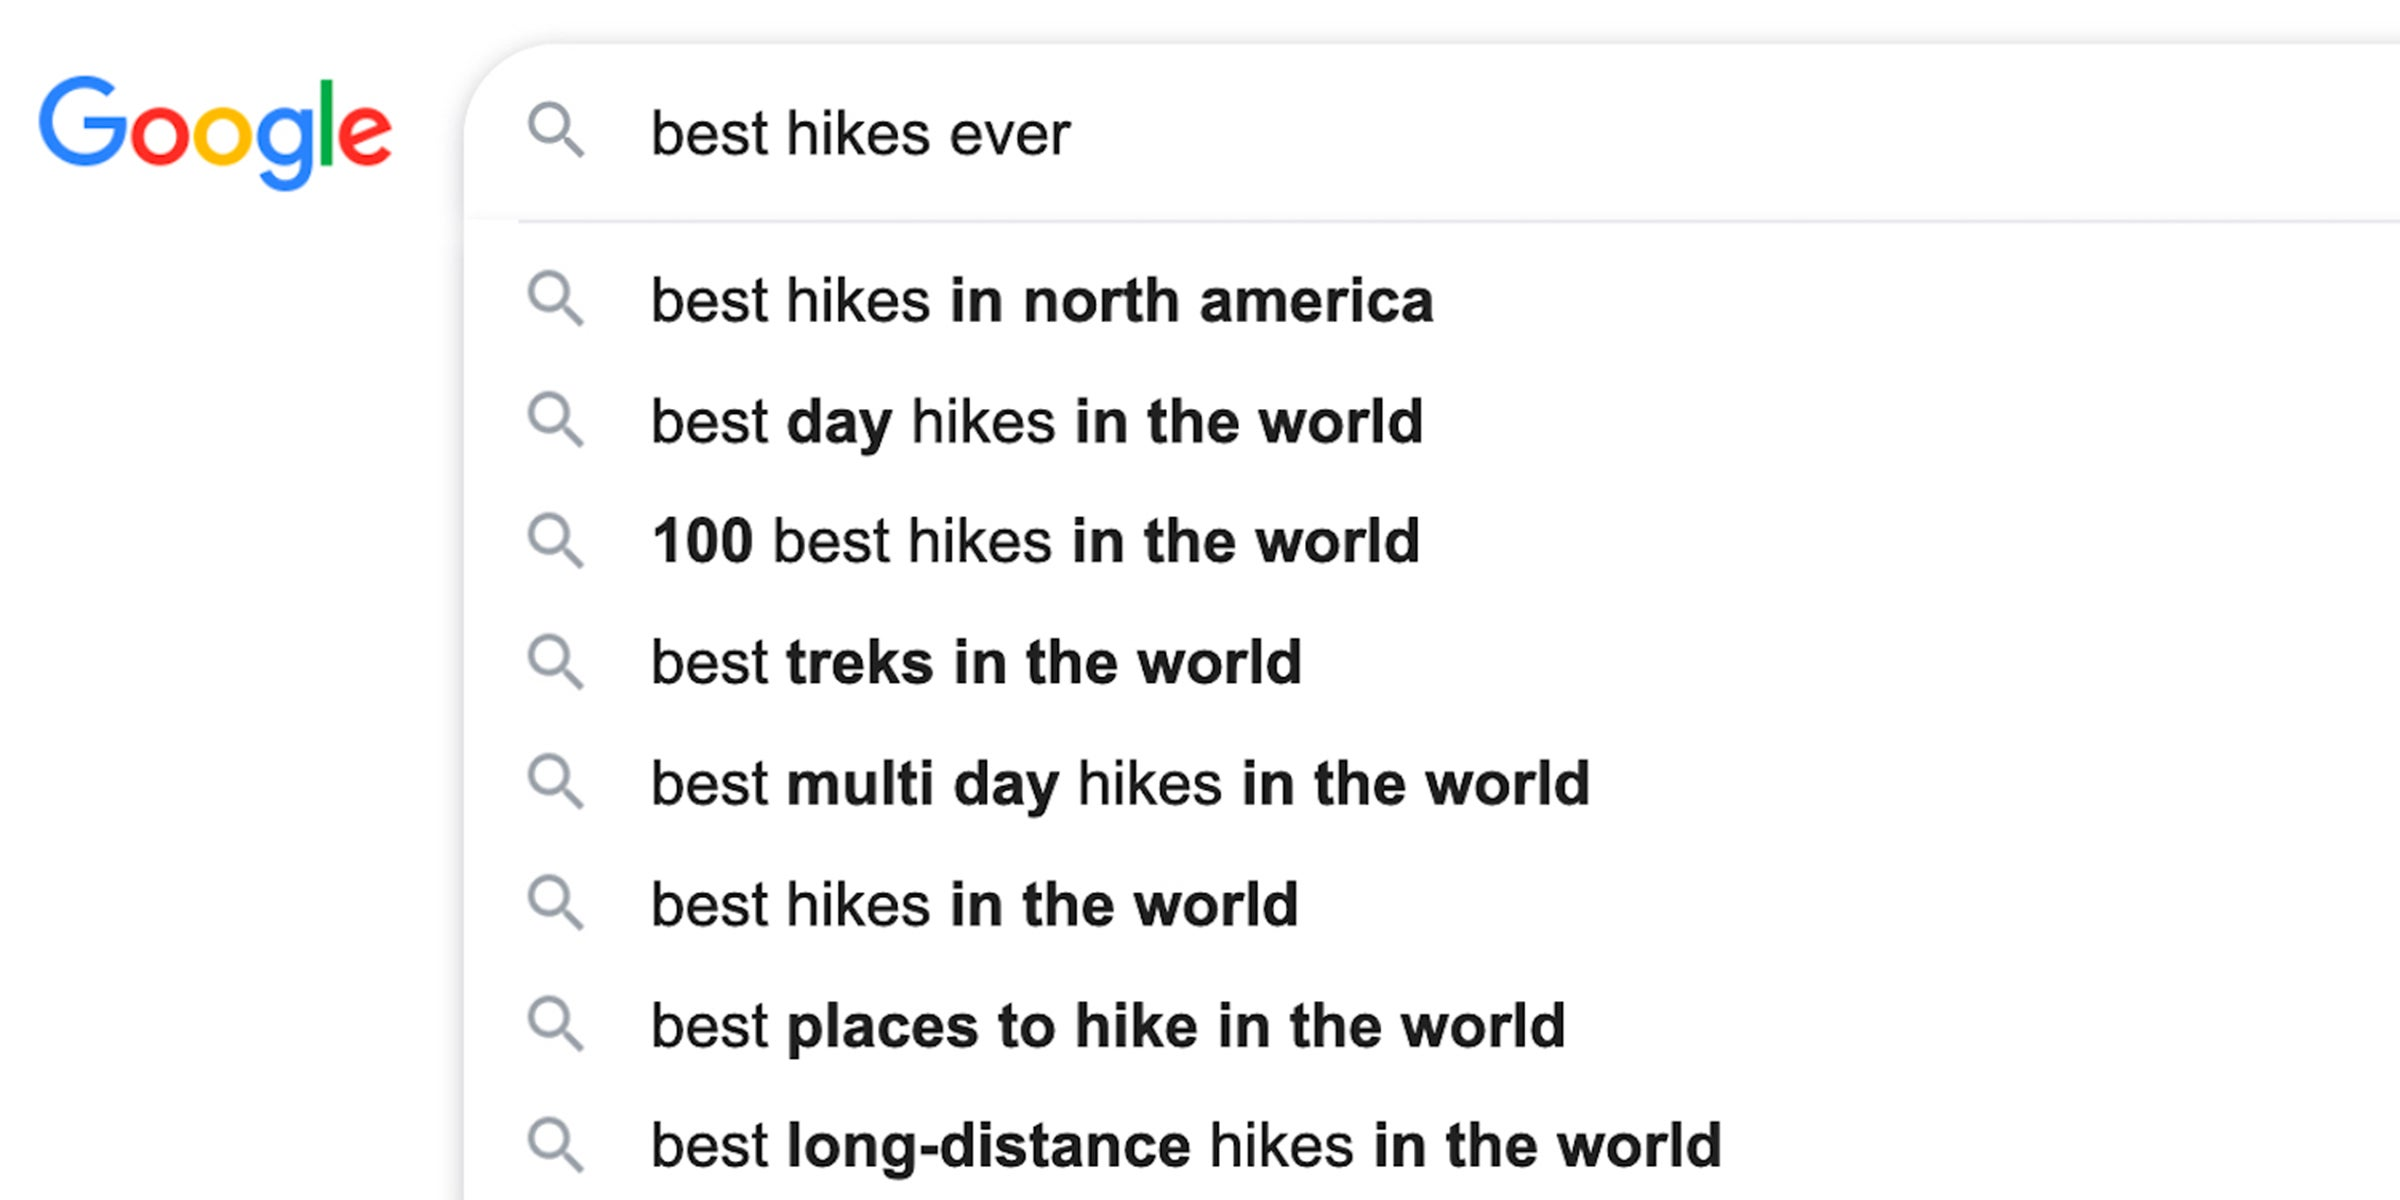 Best hikes ever Google search